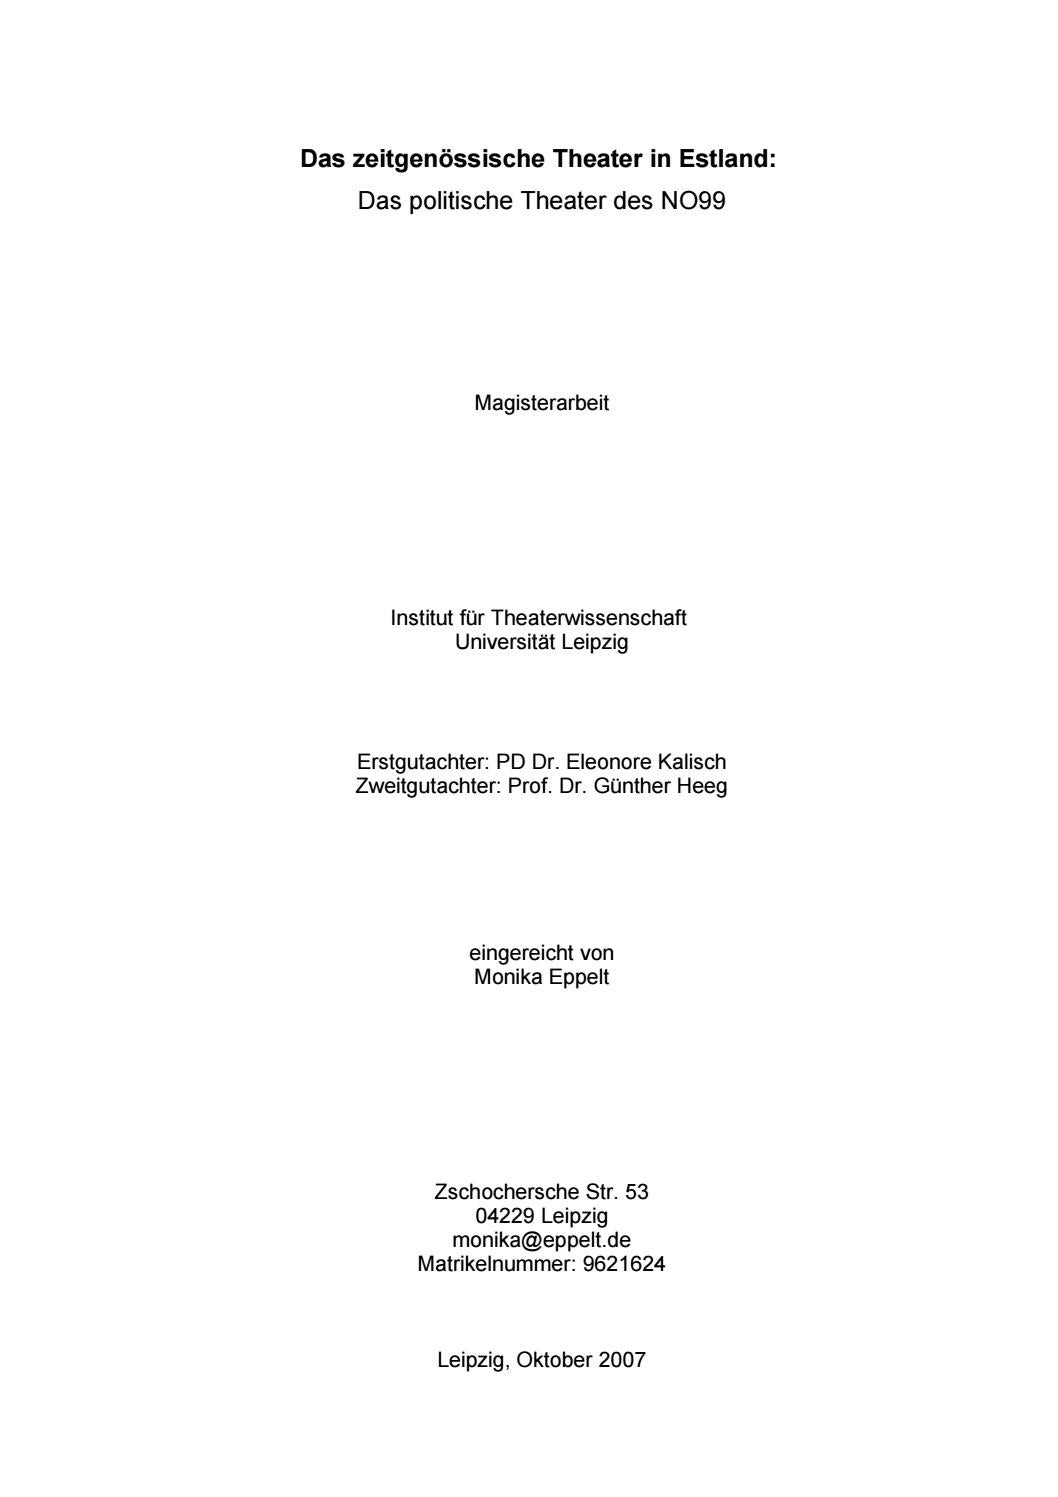 Magisterarbeit by Teater NO99 - issuu